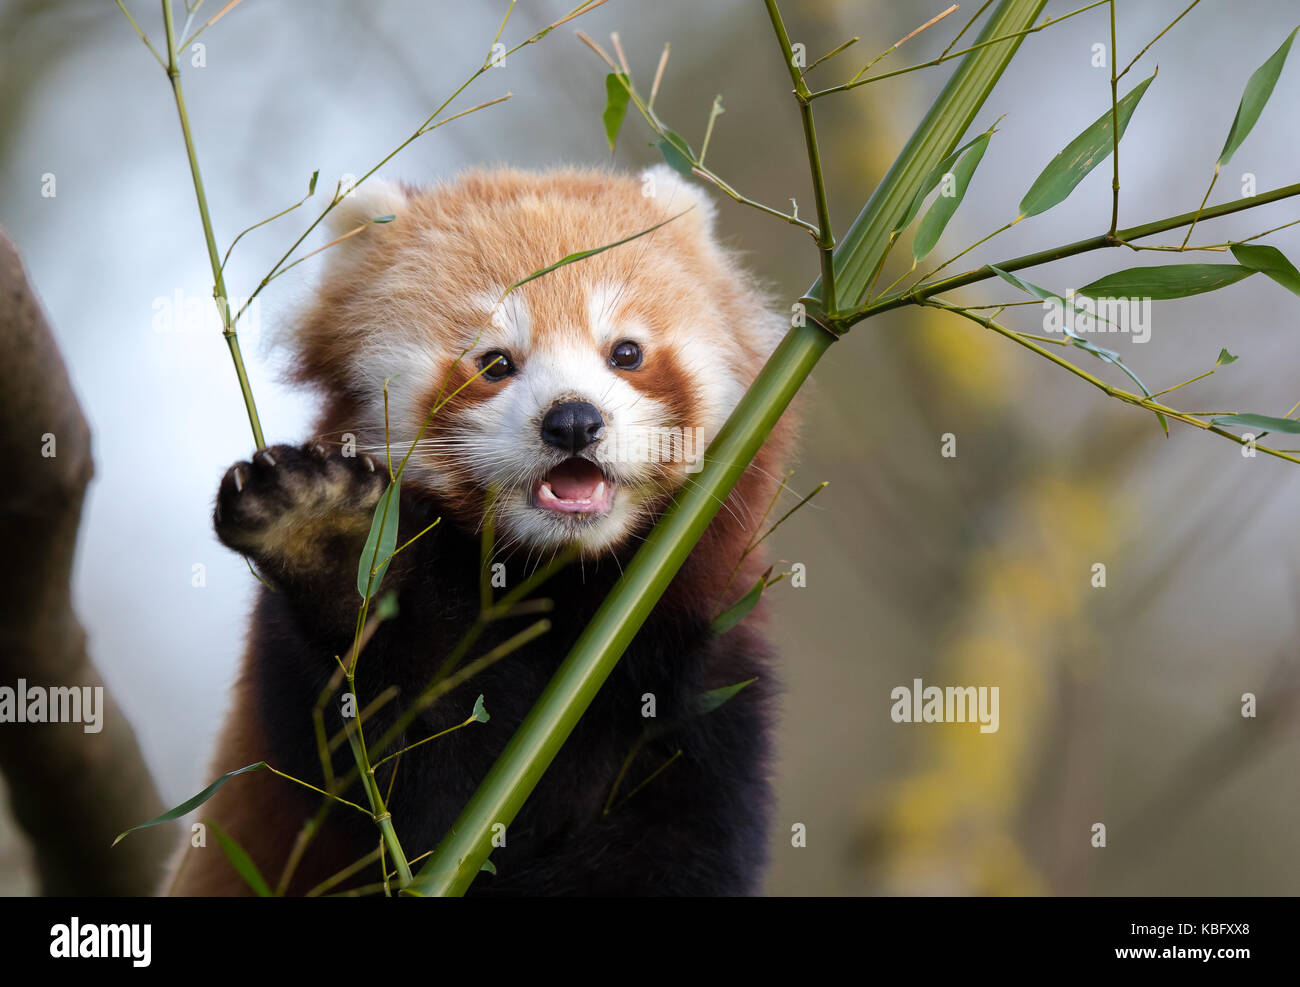 Detailed close up of open-mouthed, young red panda (Ailurus fulgens) perched in tree with front paw in air, as if - Stock Image